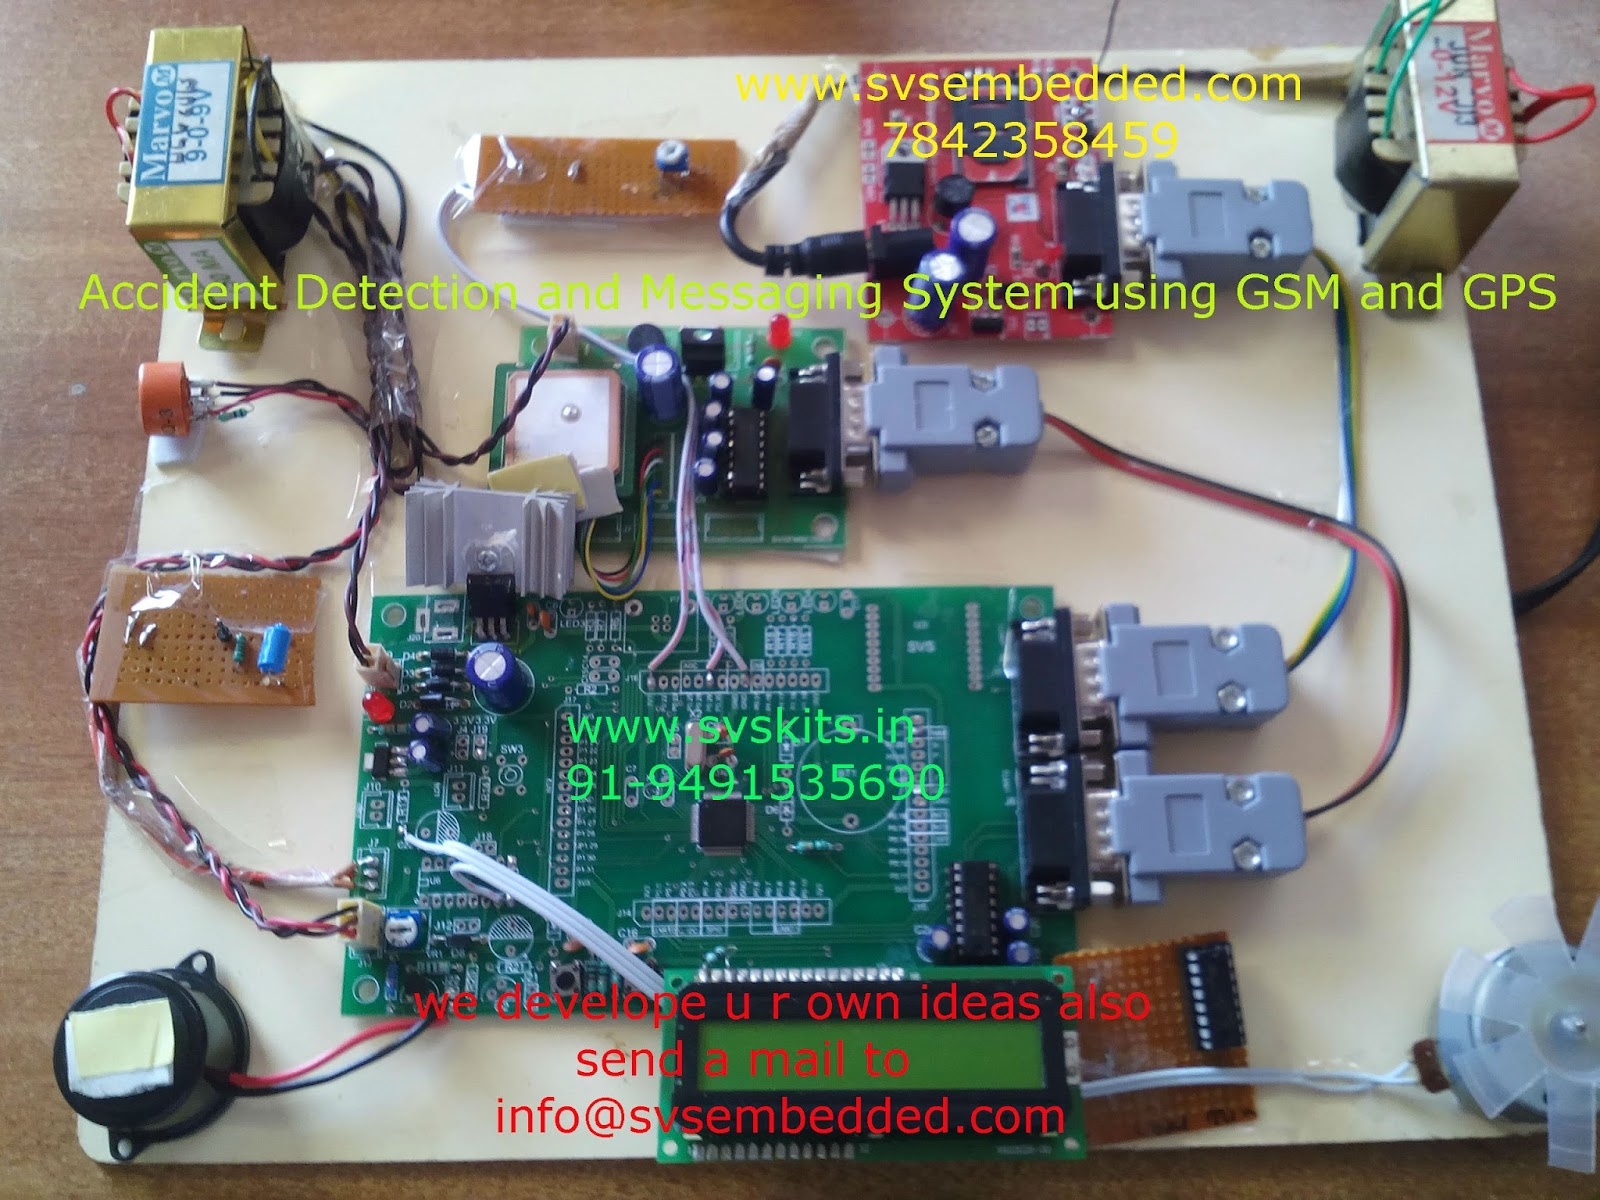 SVSEMBEDDED PROJECTS, +919491535690,+91-7842358459: IEEE Projects ...